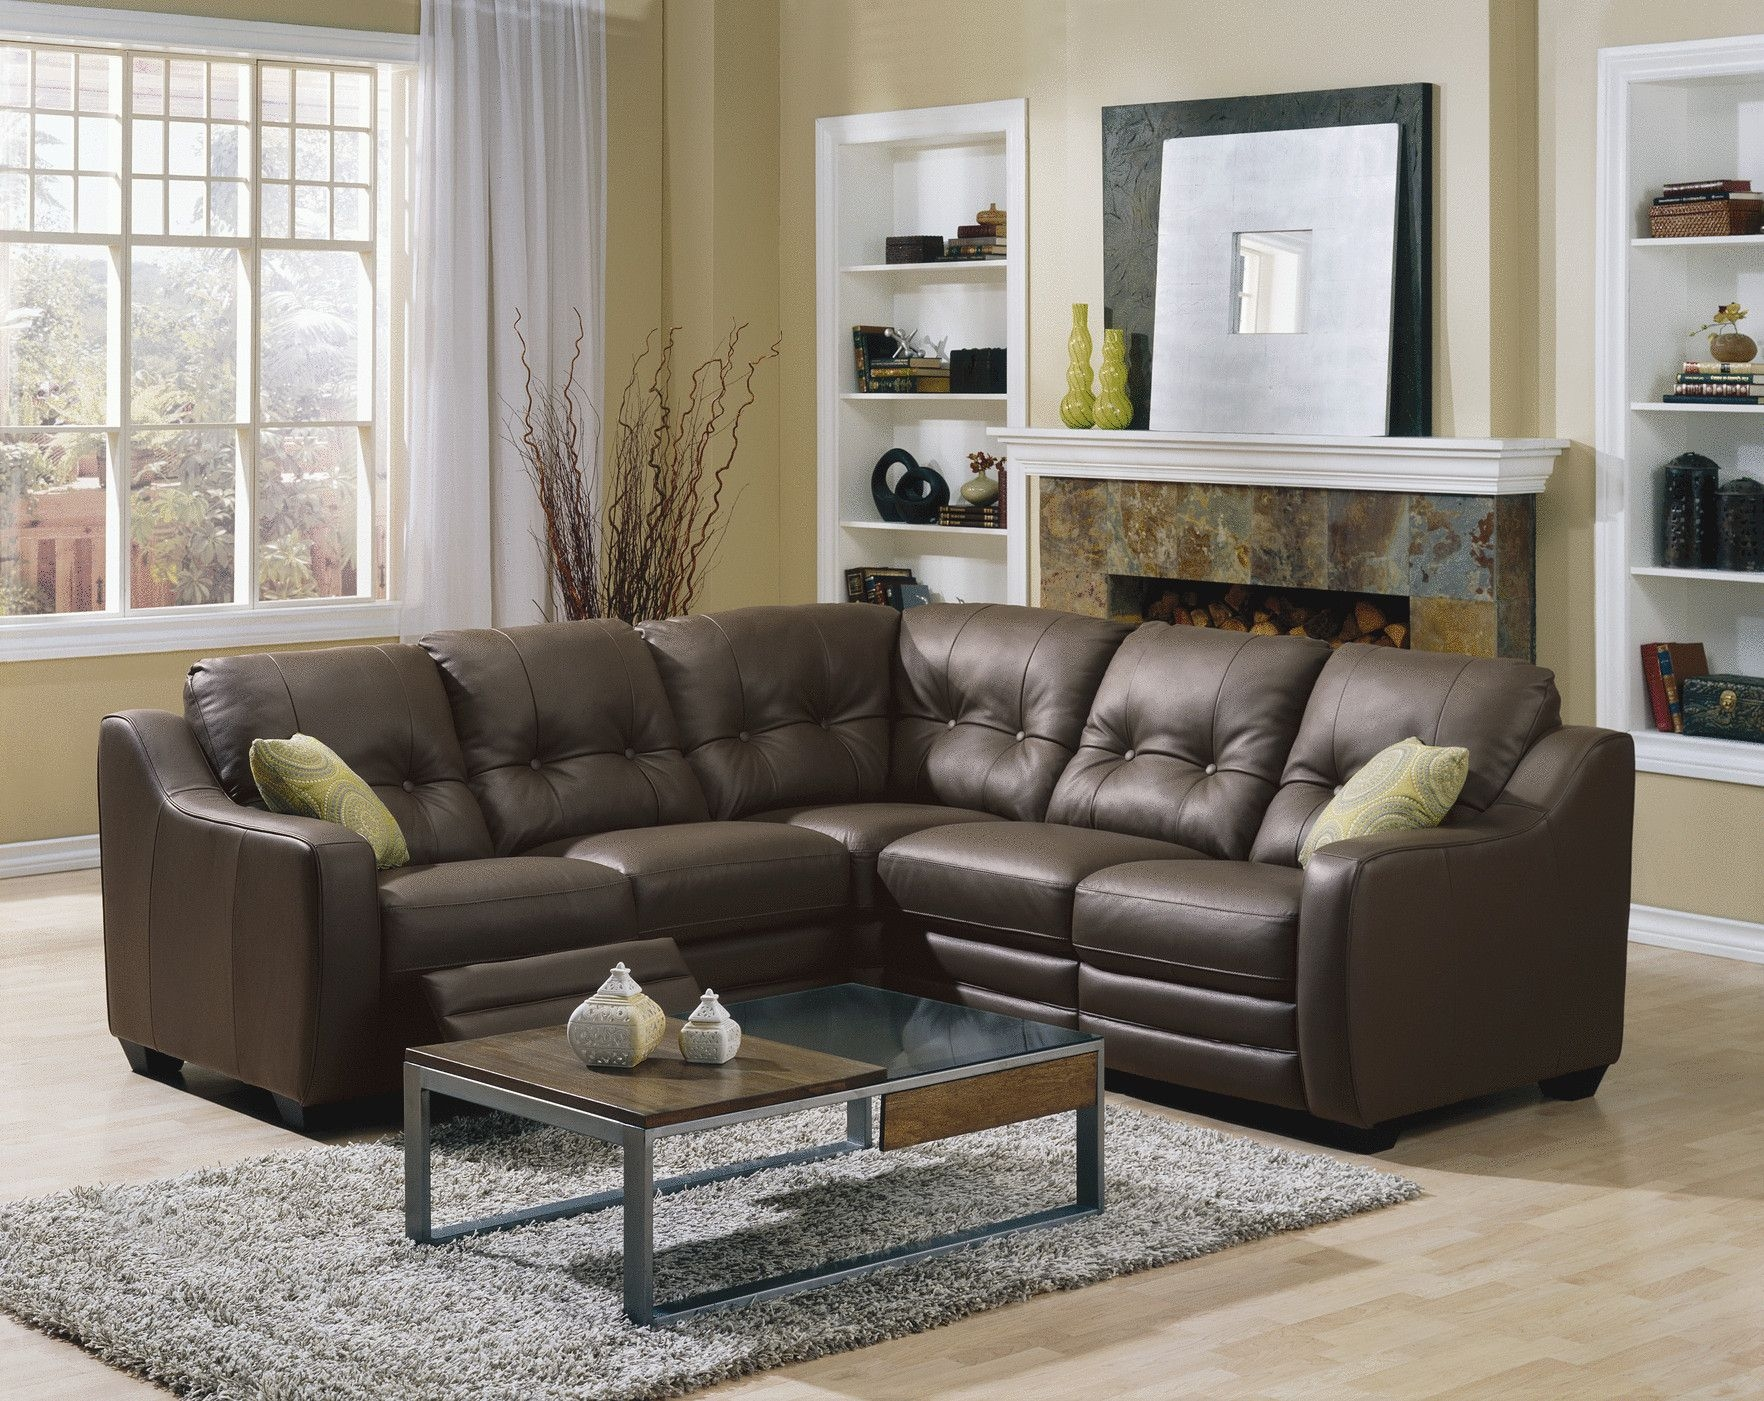 sectional sofas recliners the leather sofa company newport small with recliner visual hunt scale